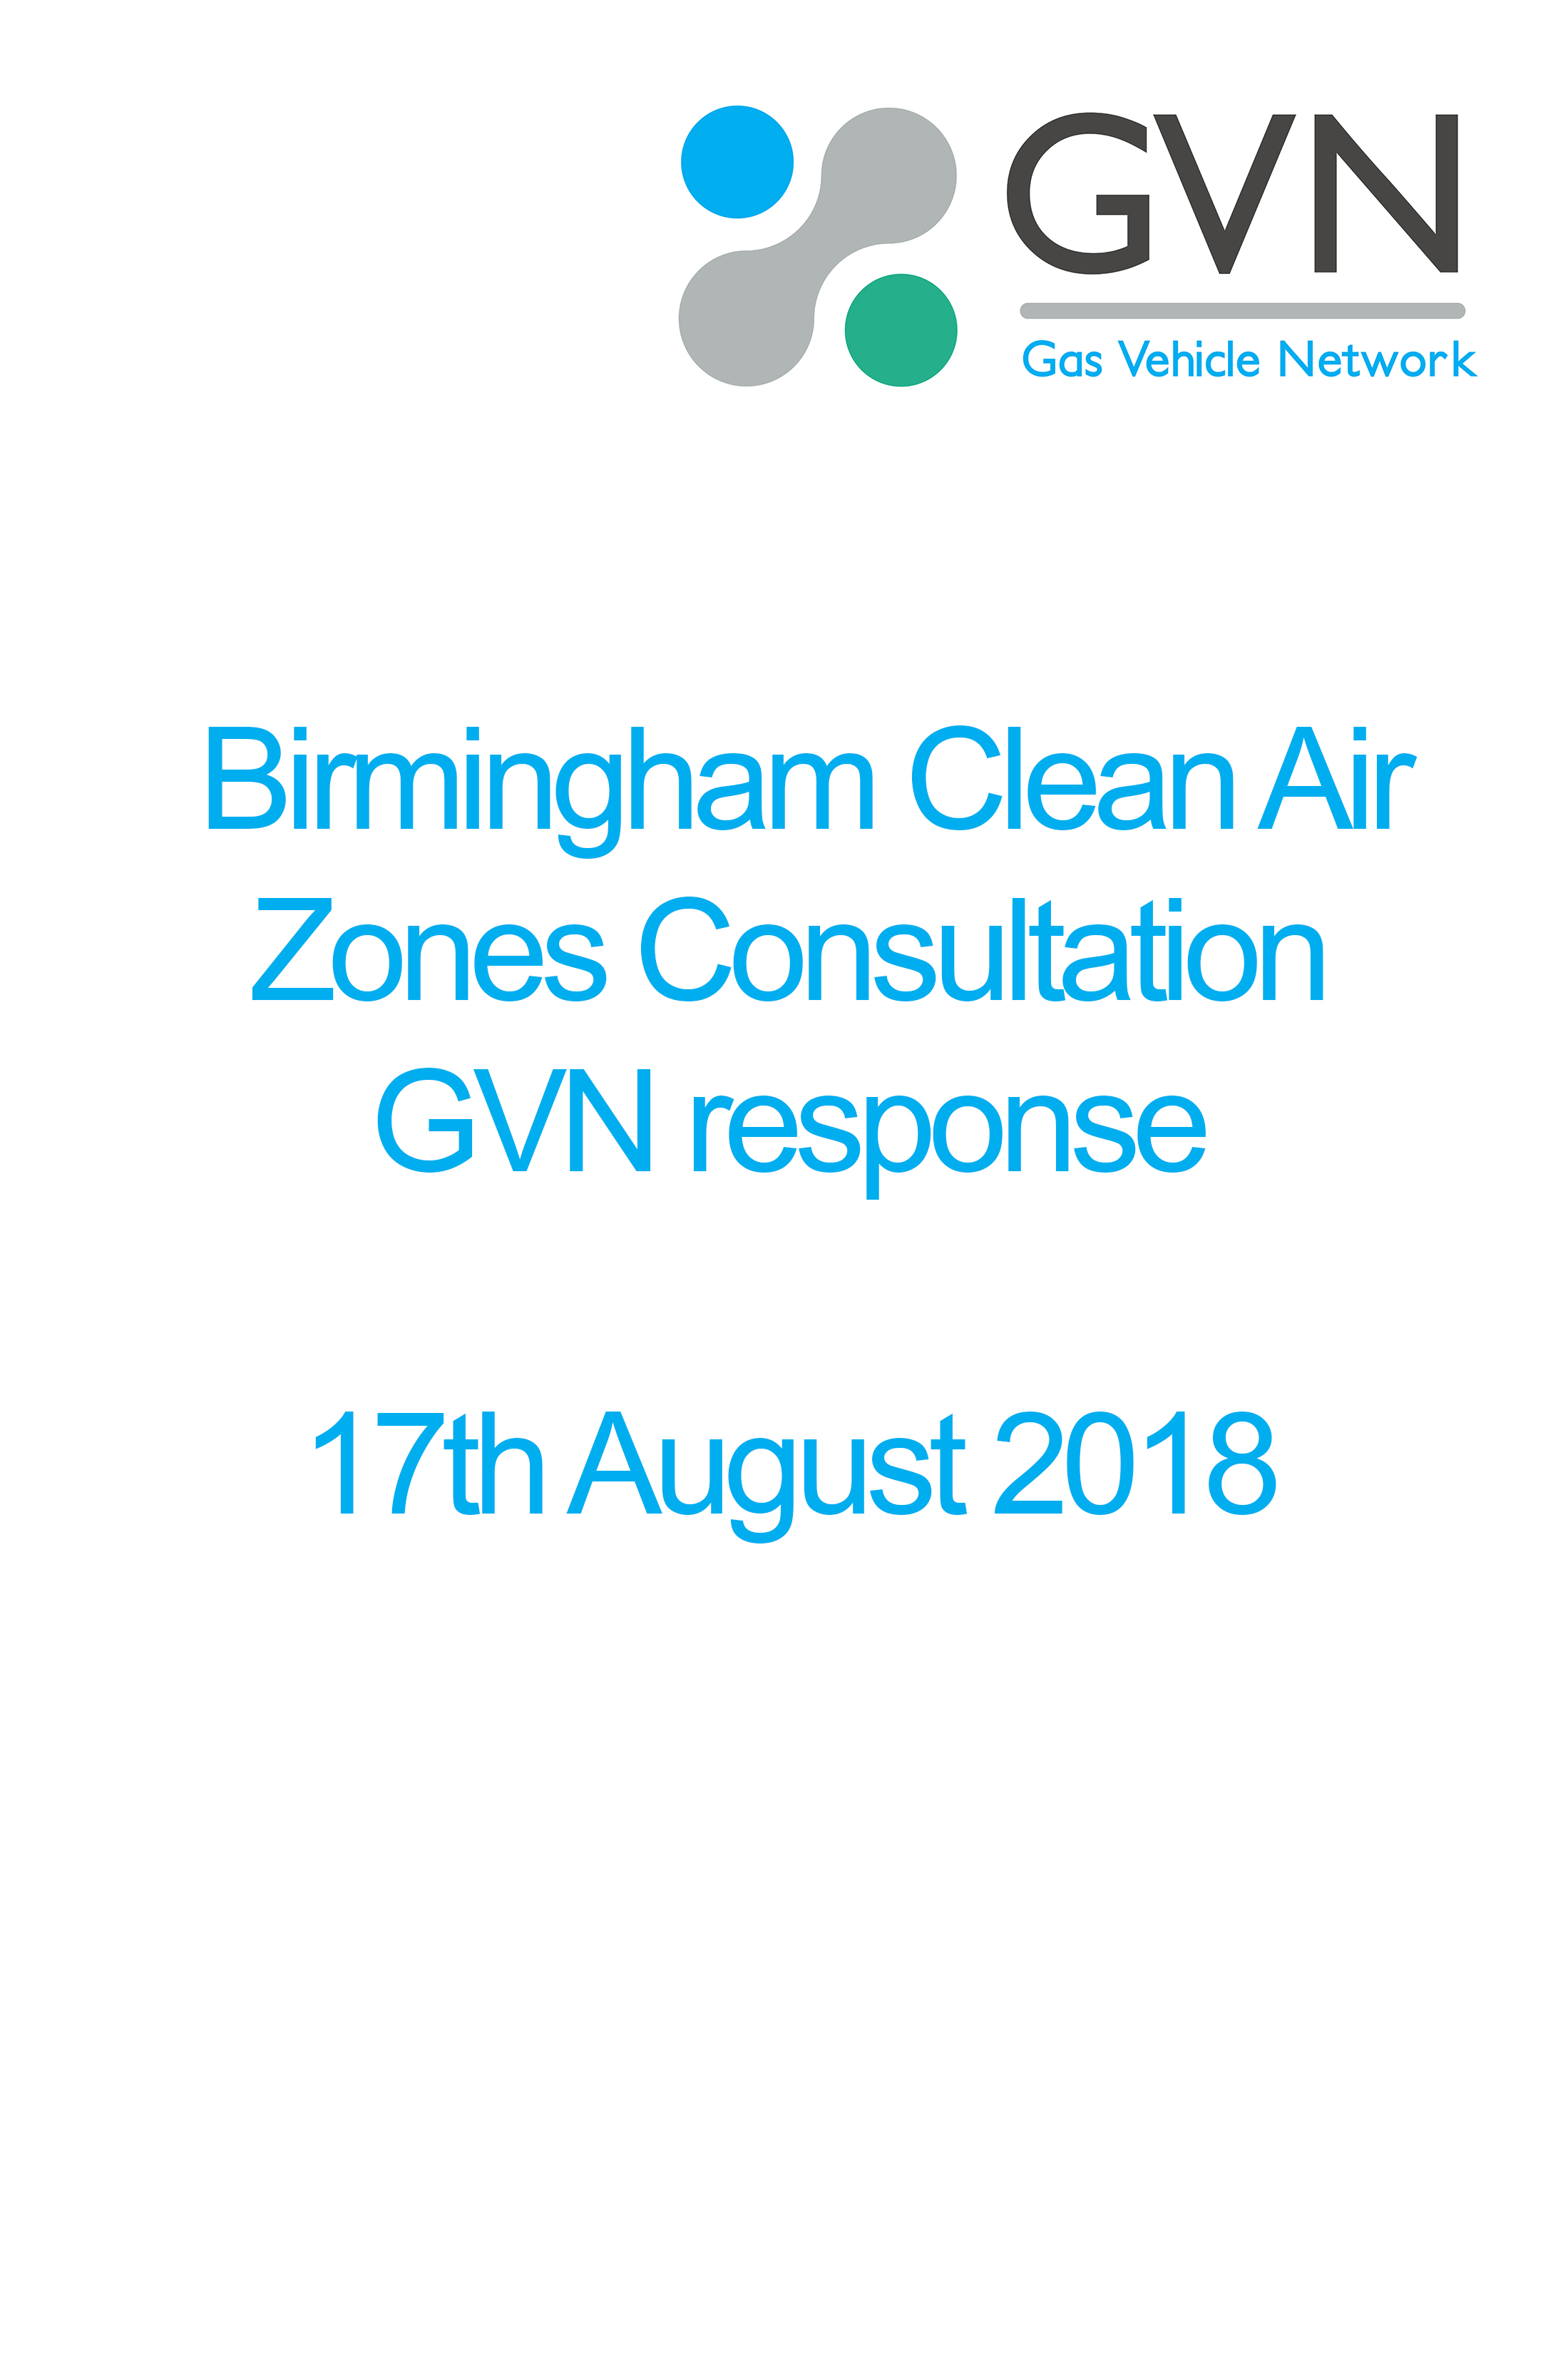 Birmingham Clean Air Zone consultation response image